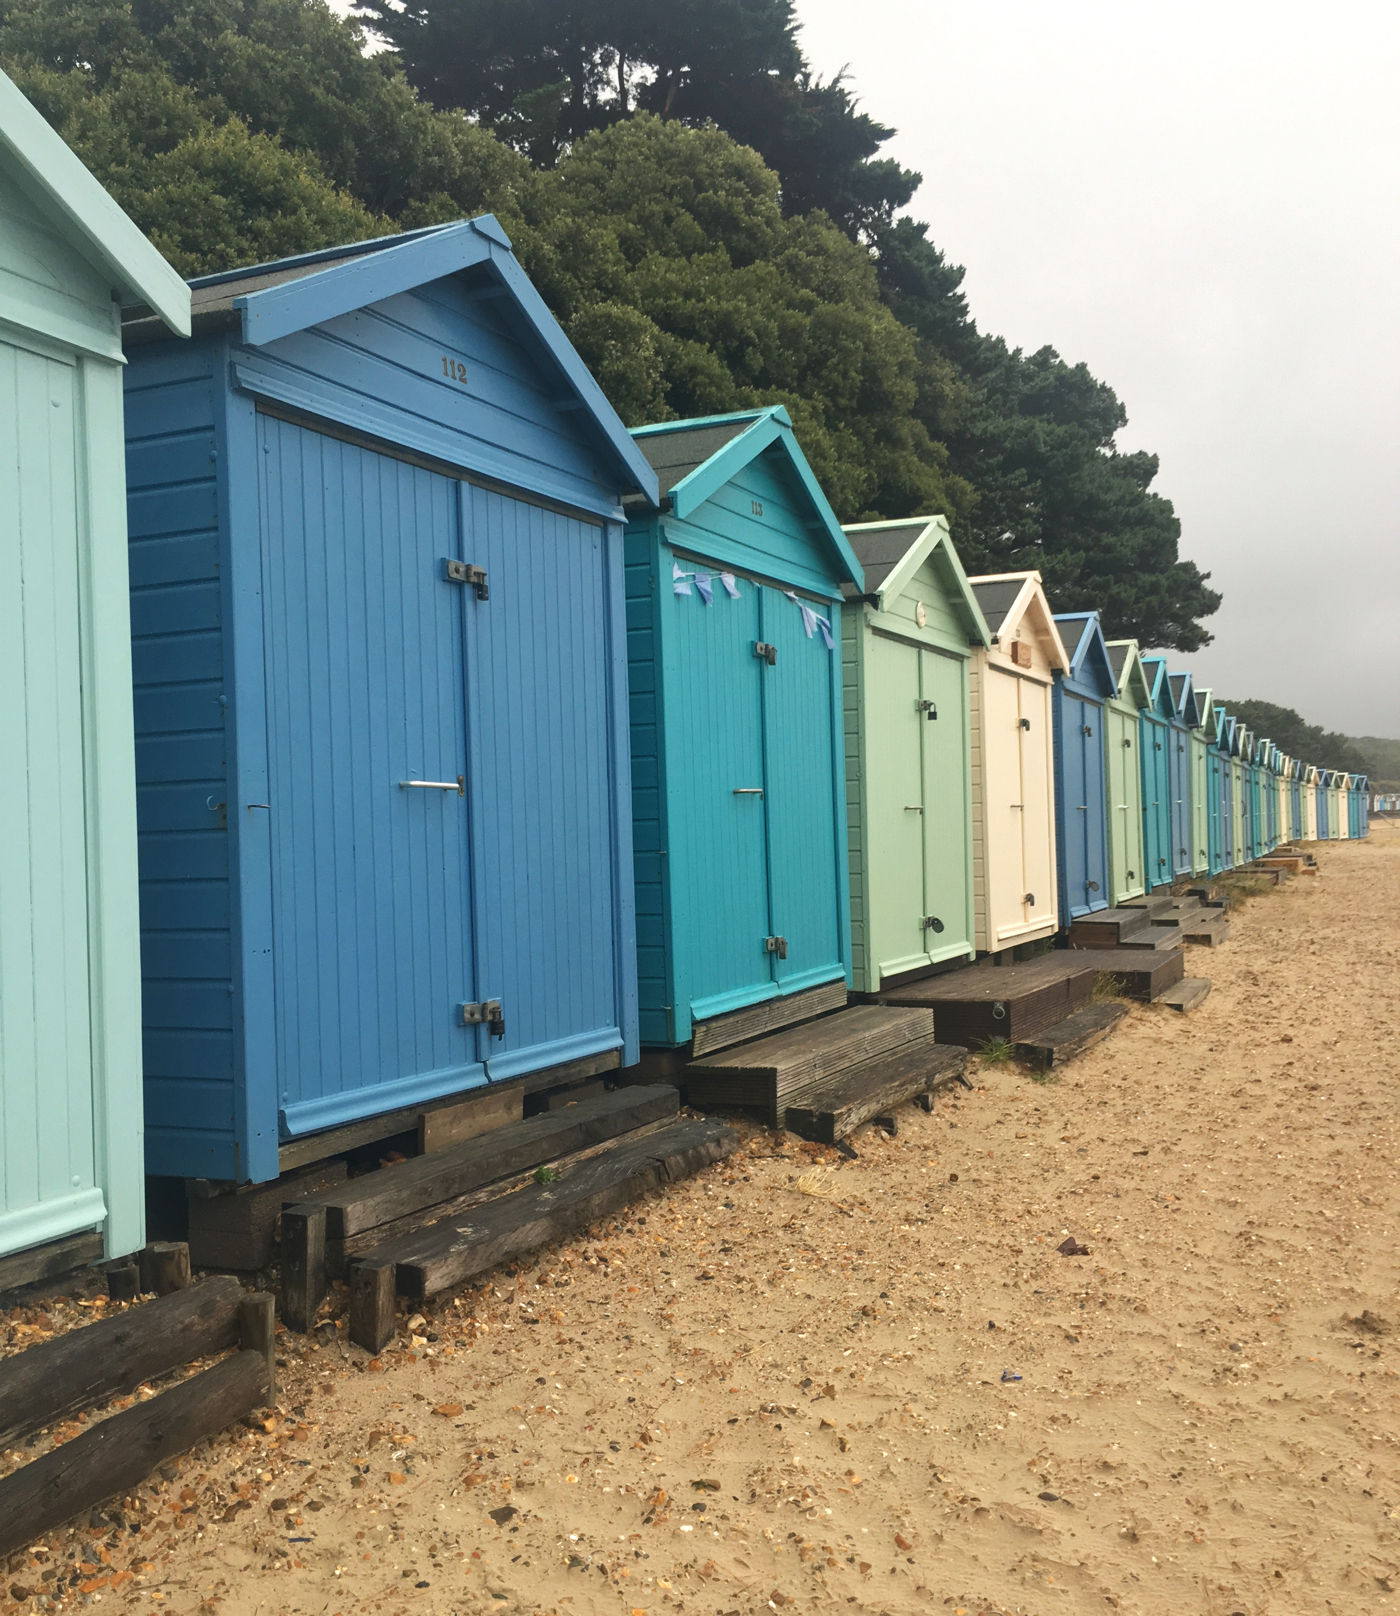 Mudeford Quay beach huts